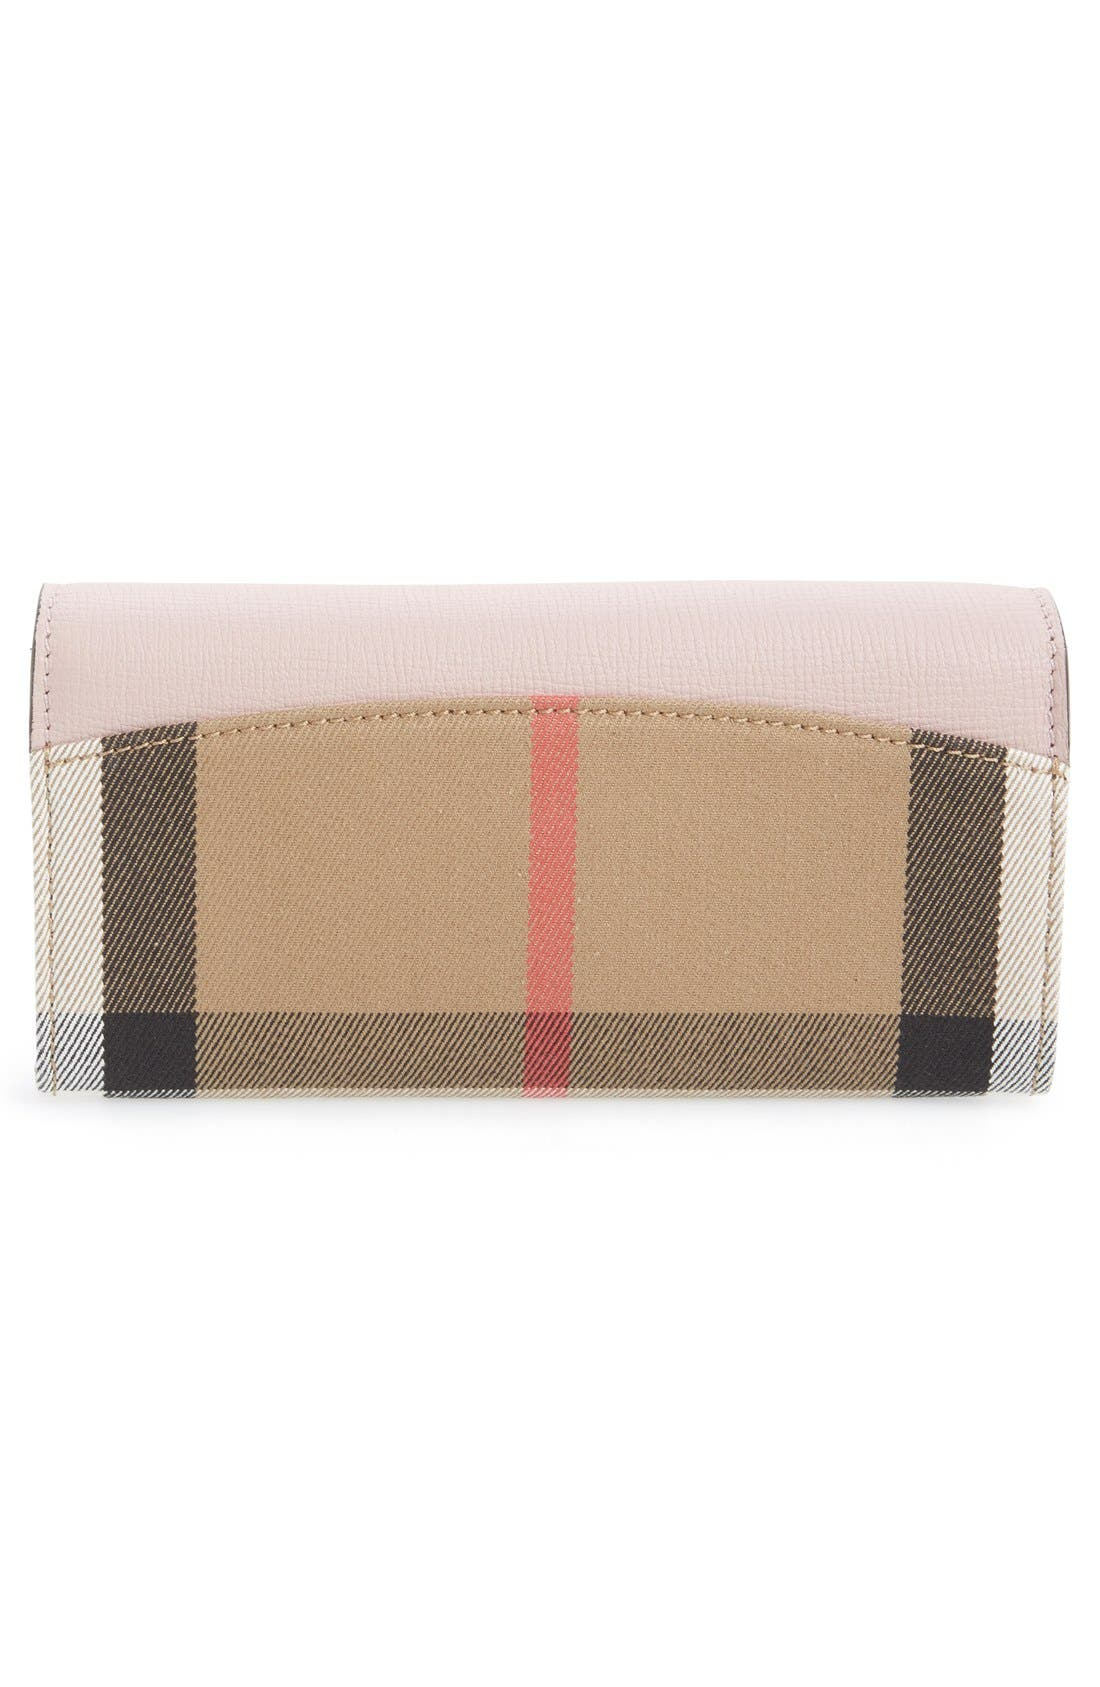 'Porter - Check' Continental Wallet,                             Alternate thumbnail 4, color,                             Pale Orchid